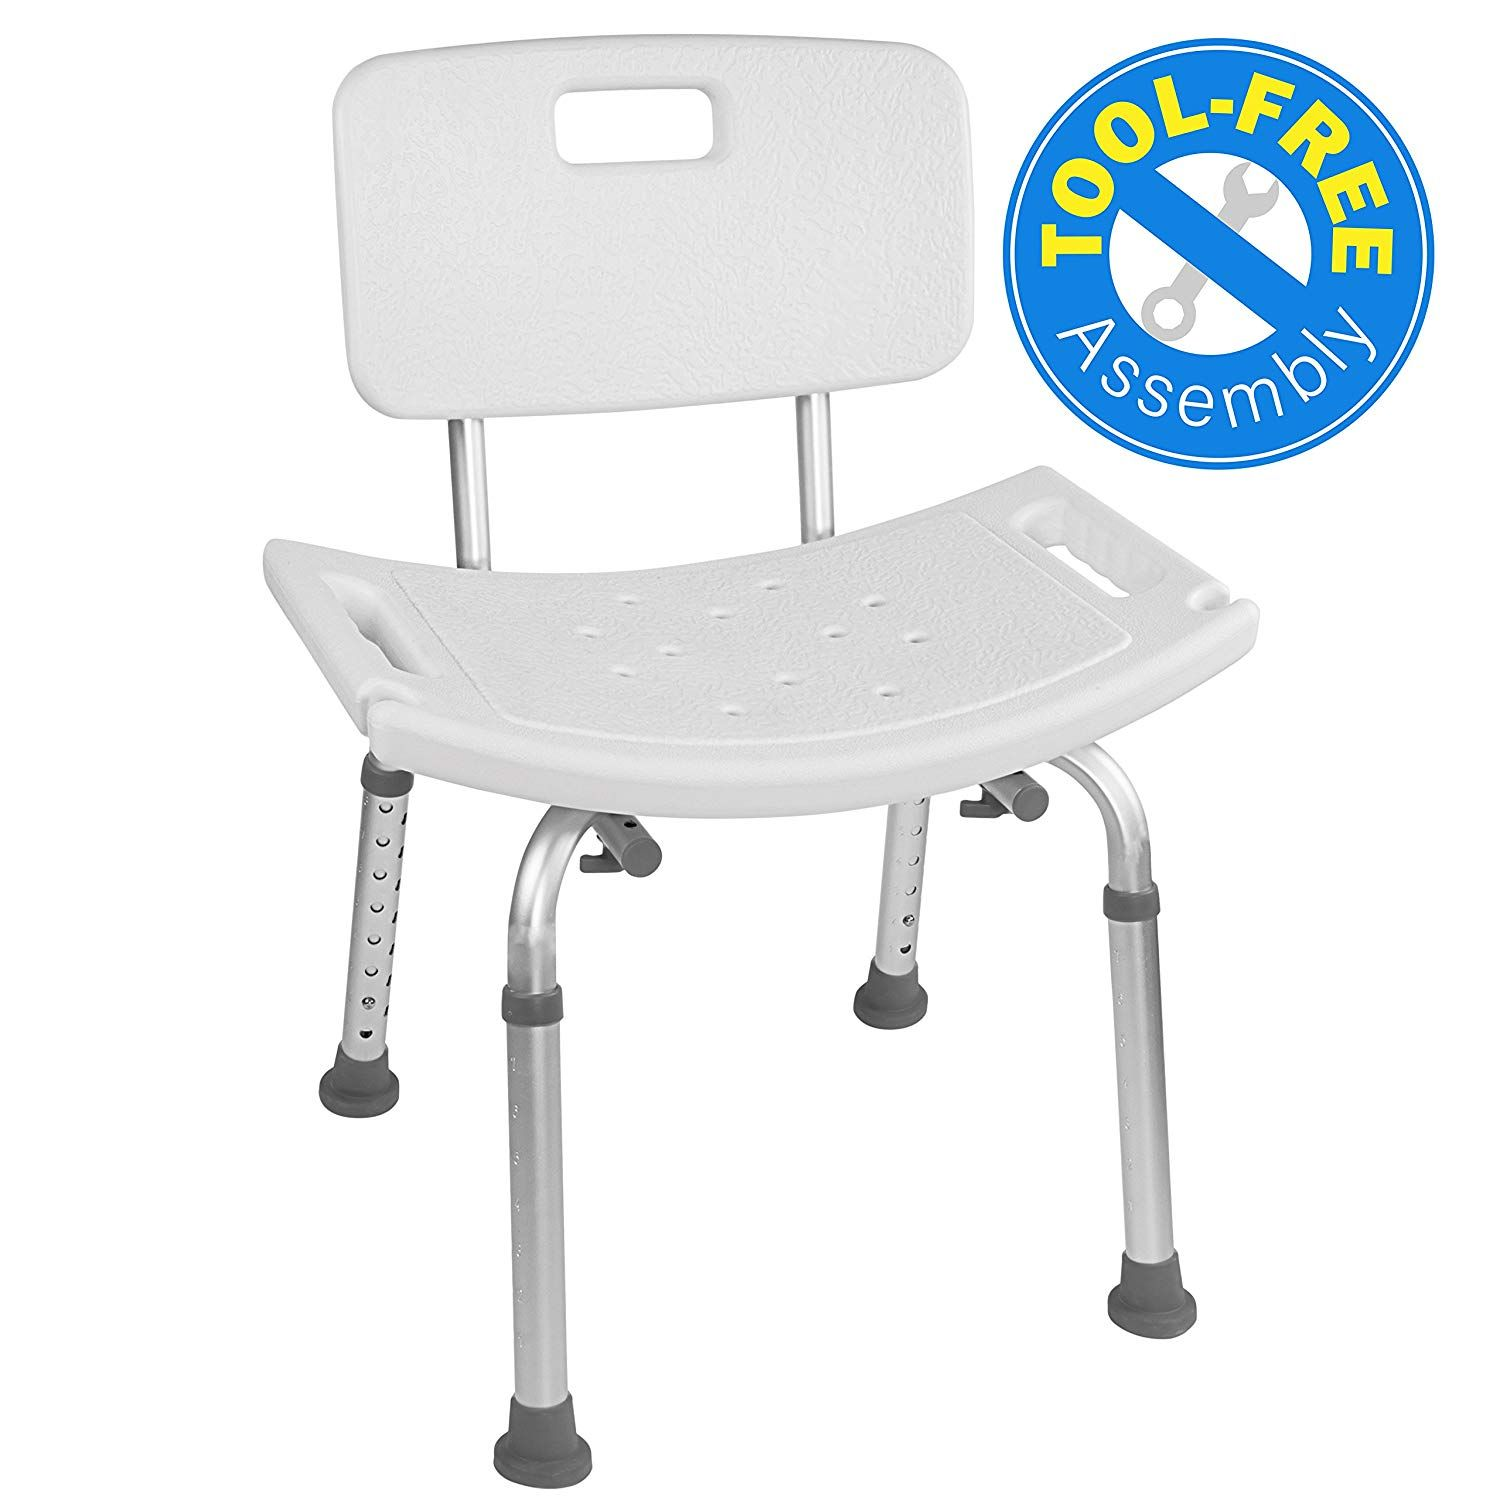 Best Shower Chair Reviews In 2020 Shower Chairs For Elderly Portable Shower Chair Shower Chair